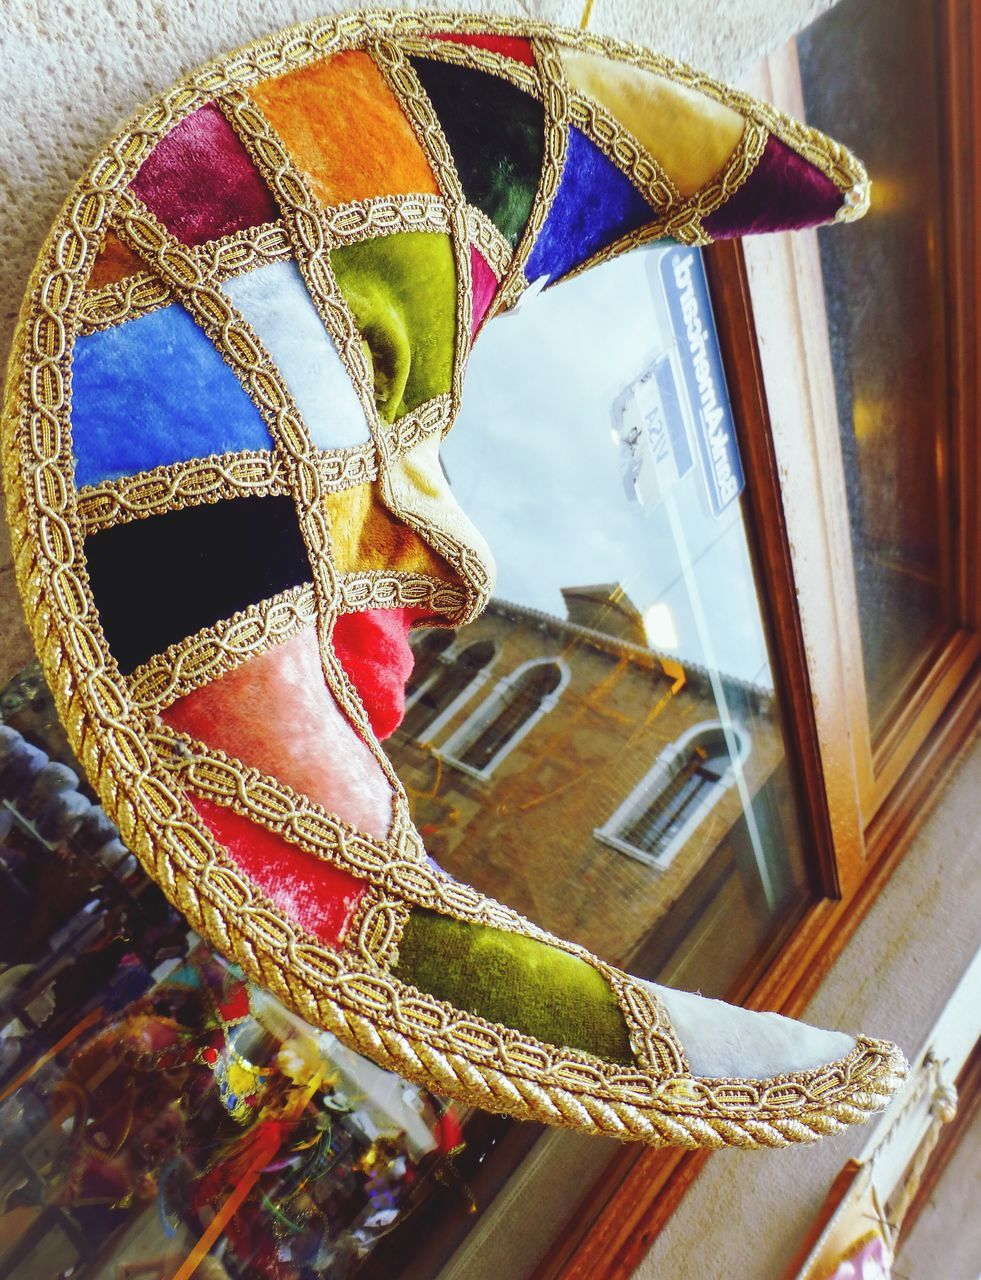 mask - disguise, venetian mask, carnival - celebration event, cultures, day, tradition, celebration, indoors, no people, multi colored, gondola - traditional boat, close-up, carousel